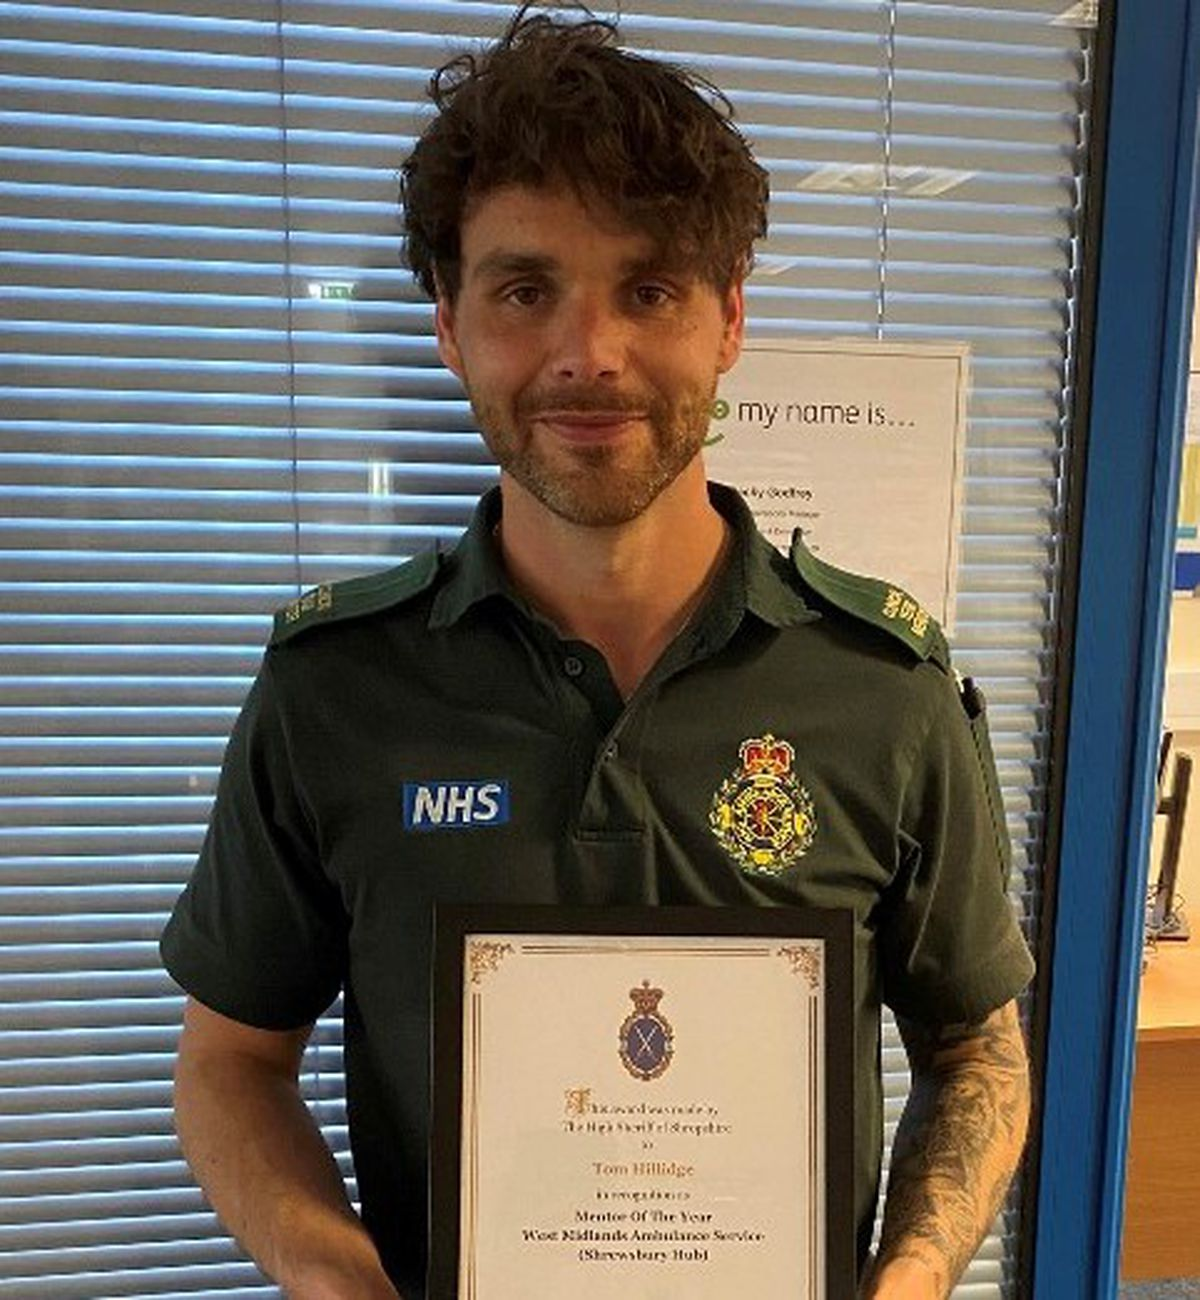 The mentor of the year award went to Tom Hillidge at Shrewsbury ambulance hub